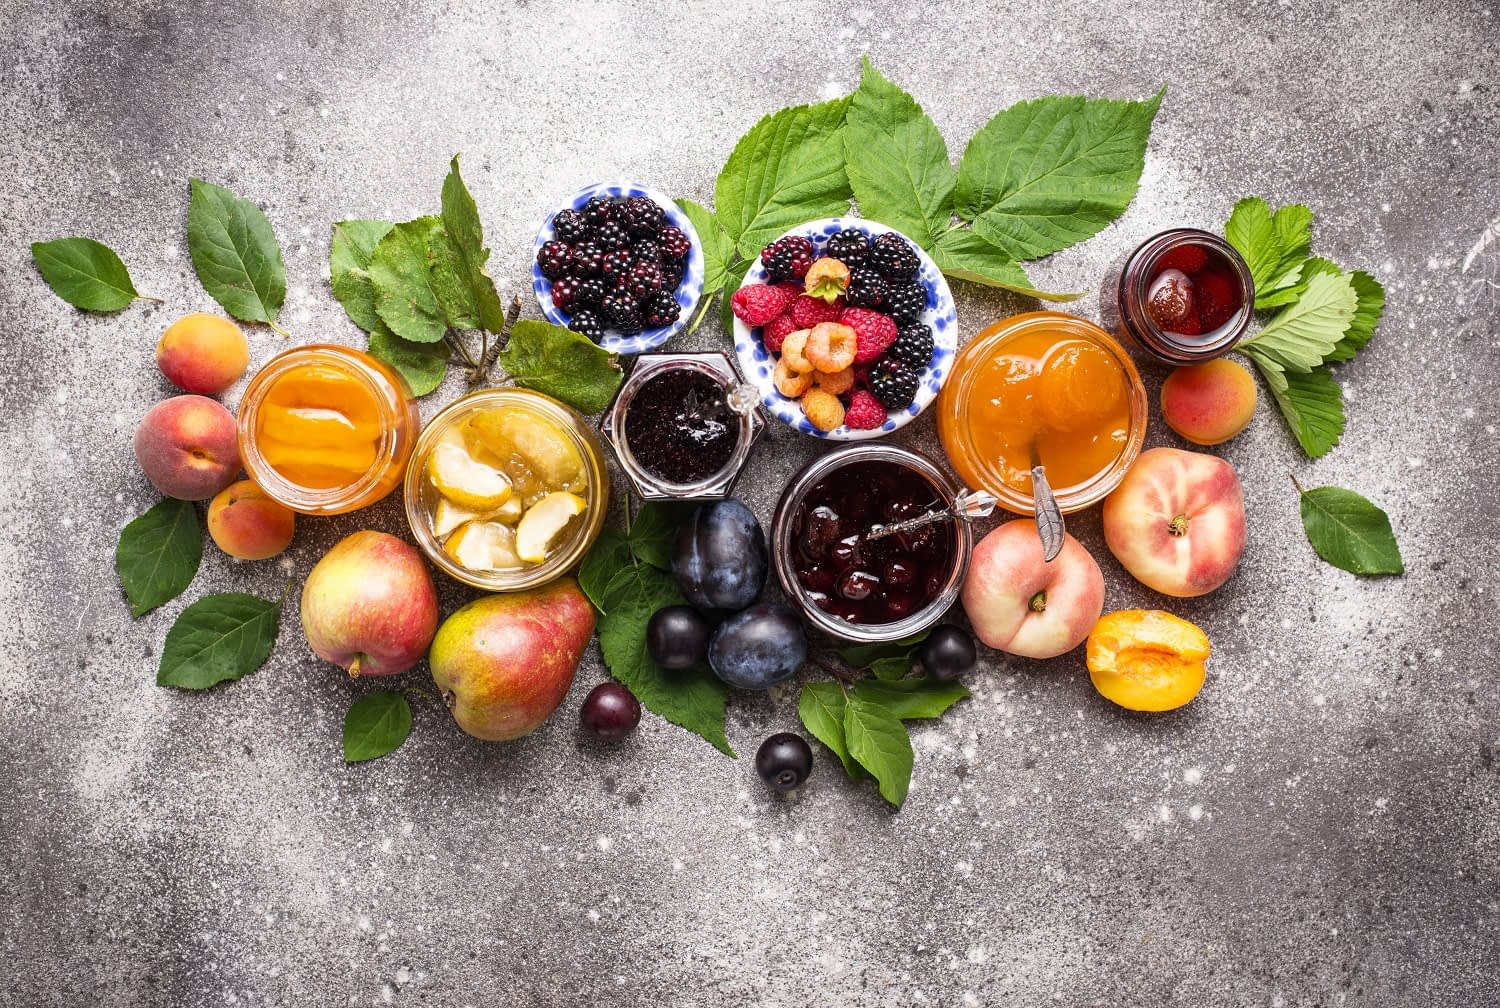 Assortment of fruits and jams